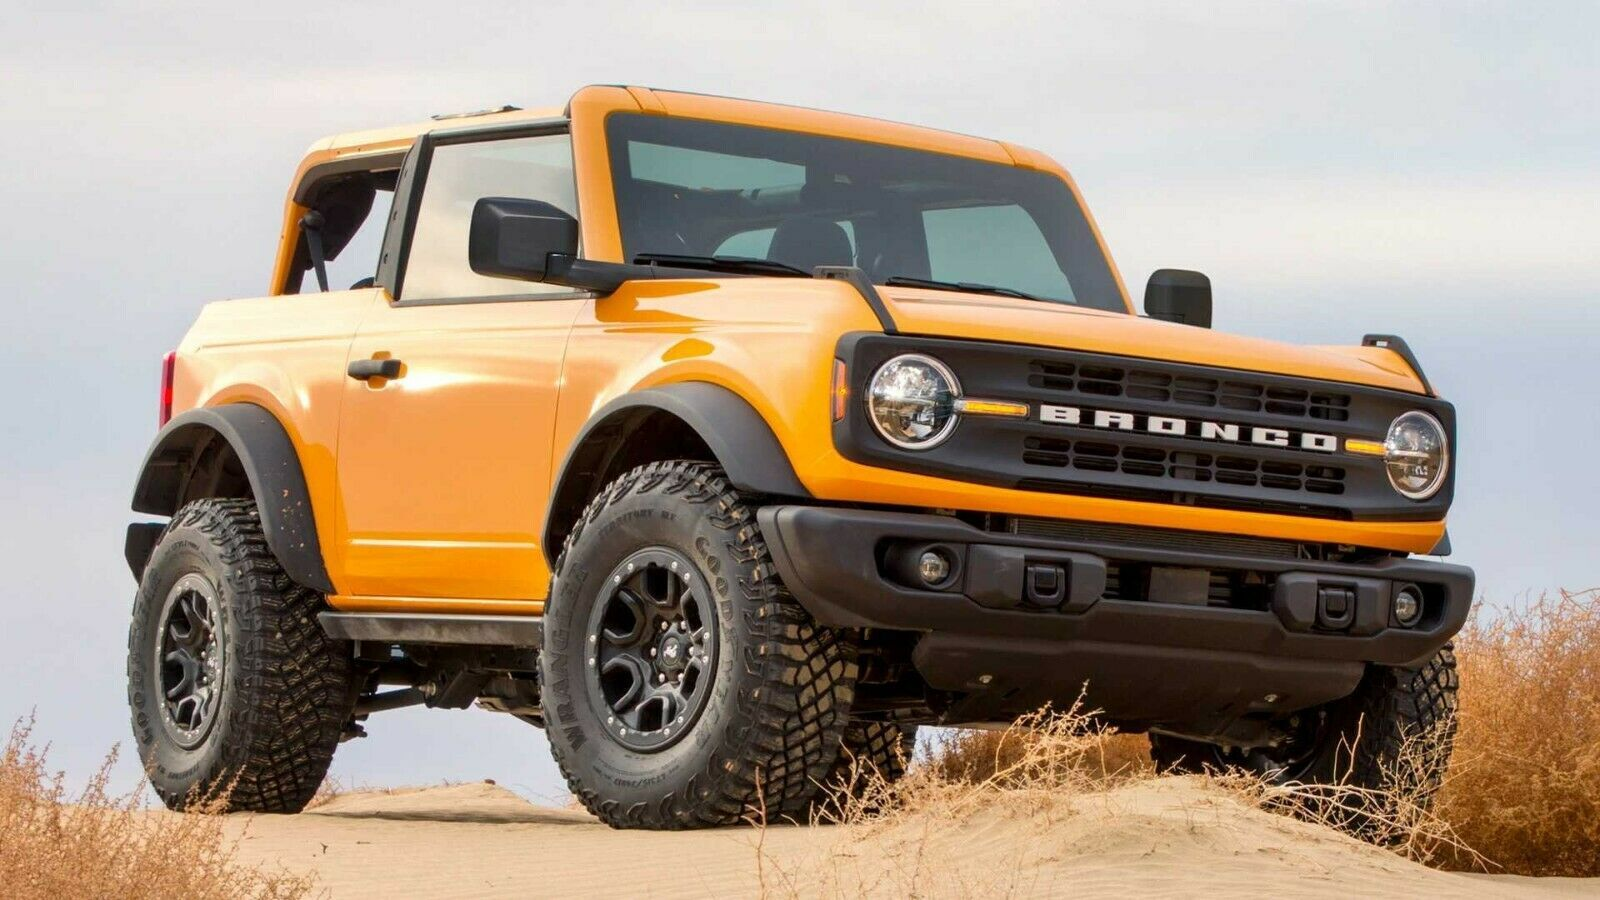 2021 Ford Bronco orange, 24X36 inch poster, Awesome! - Art ...